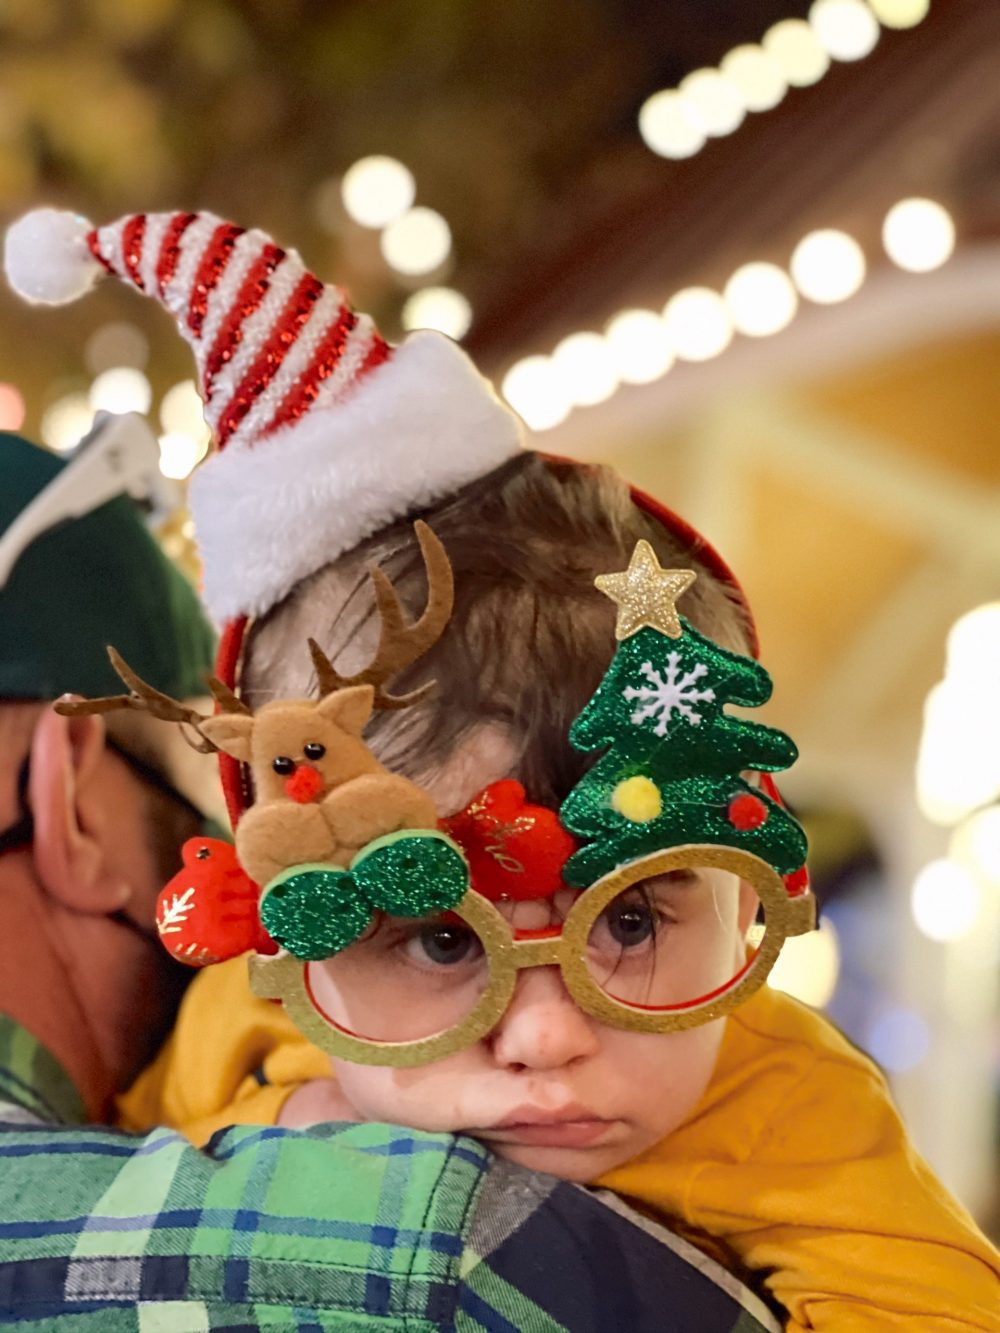 One of the Best Secret Winter Sun Destinations, Scottsdale Arizona. Family-friendly Holiday Lights train at McCormick-Stillman Railroad park |Guide by popular Florida travel blog, Fresh Mommy Blog: image of a baby boy wearing Christmas glasses.